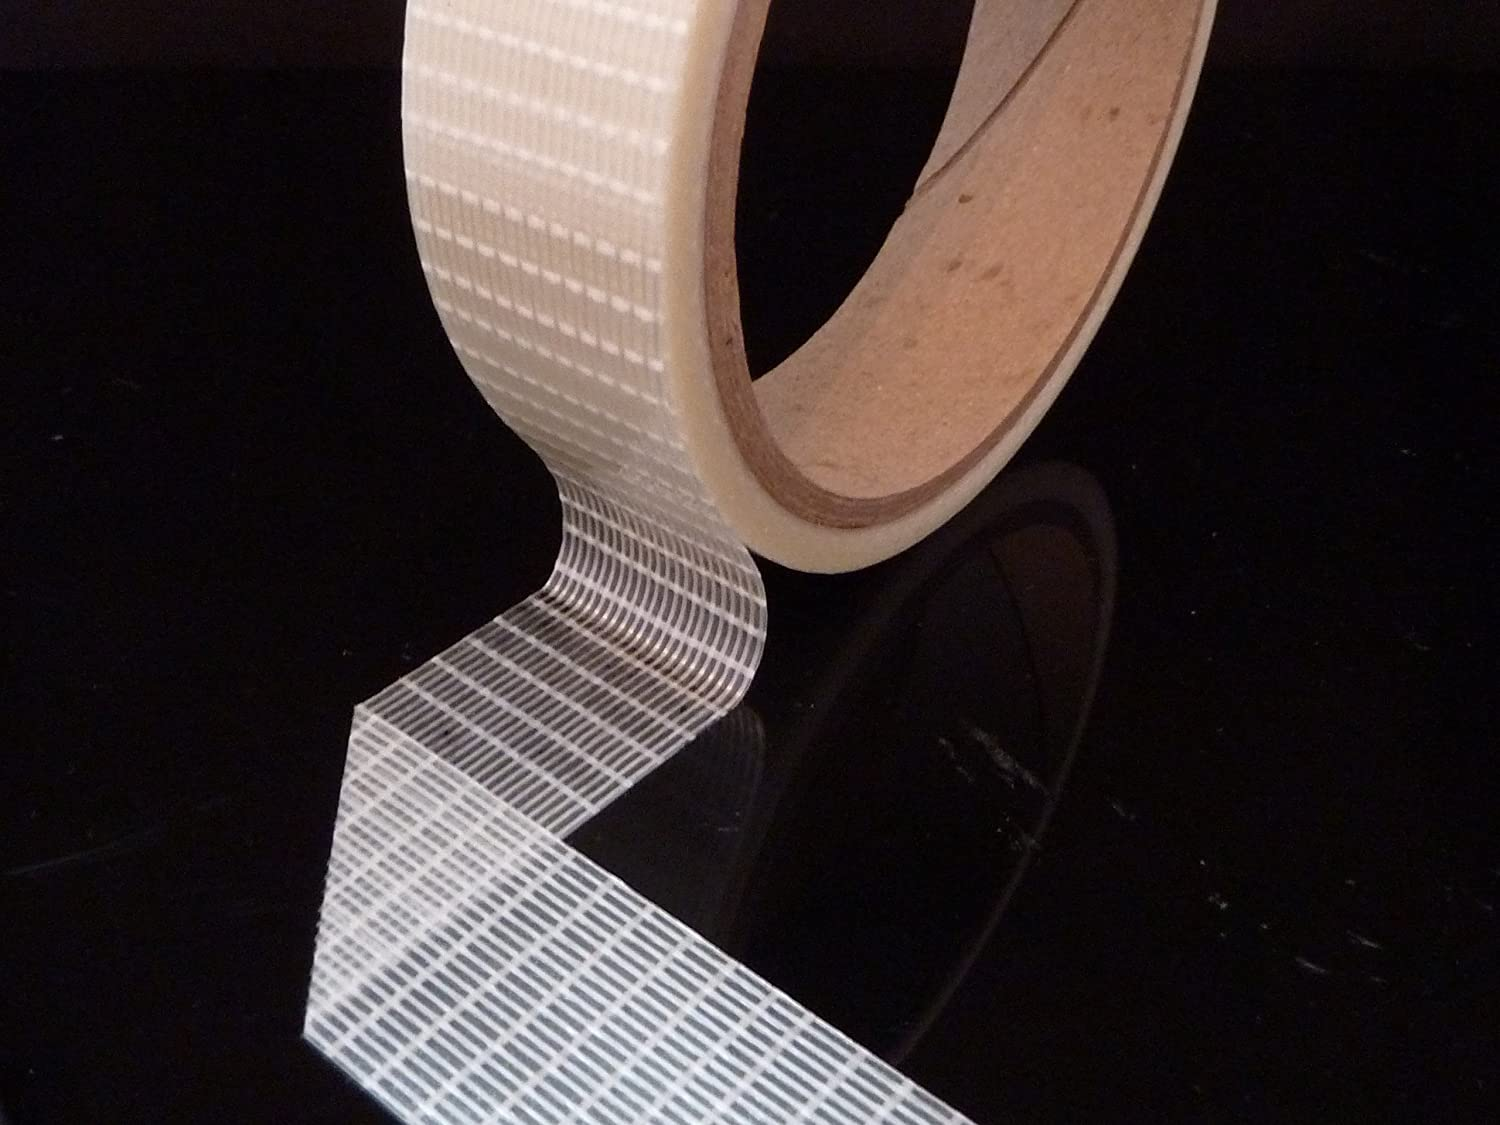 Convertape Bat Edge Fibreglass Cricket Bat Repair Tape by Convertape C10